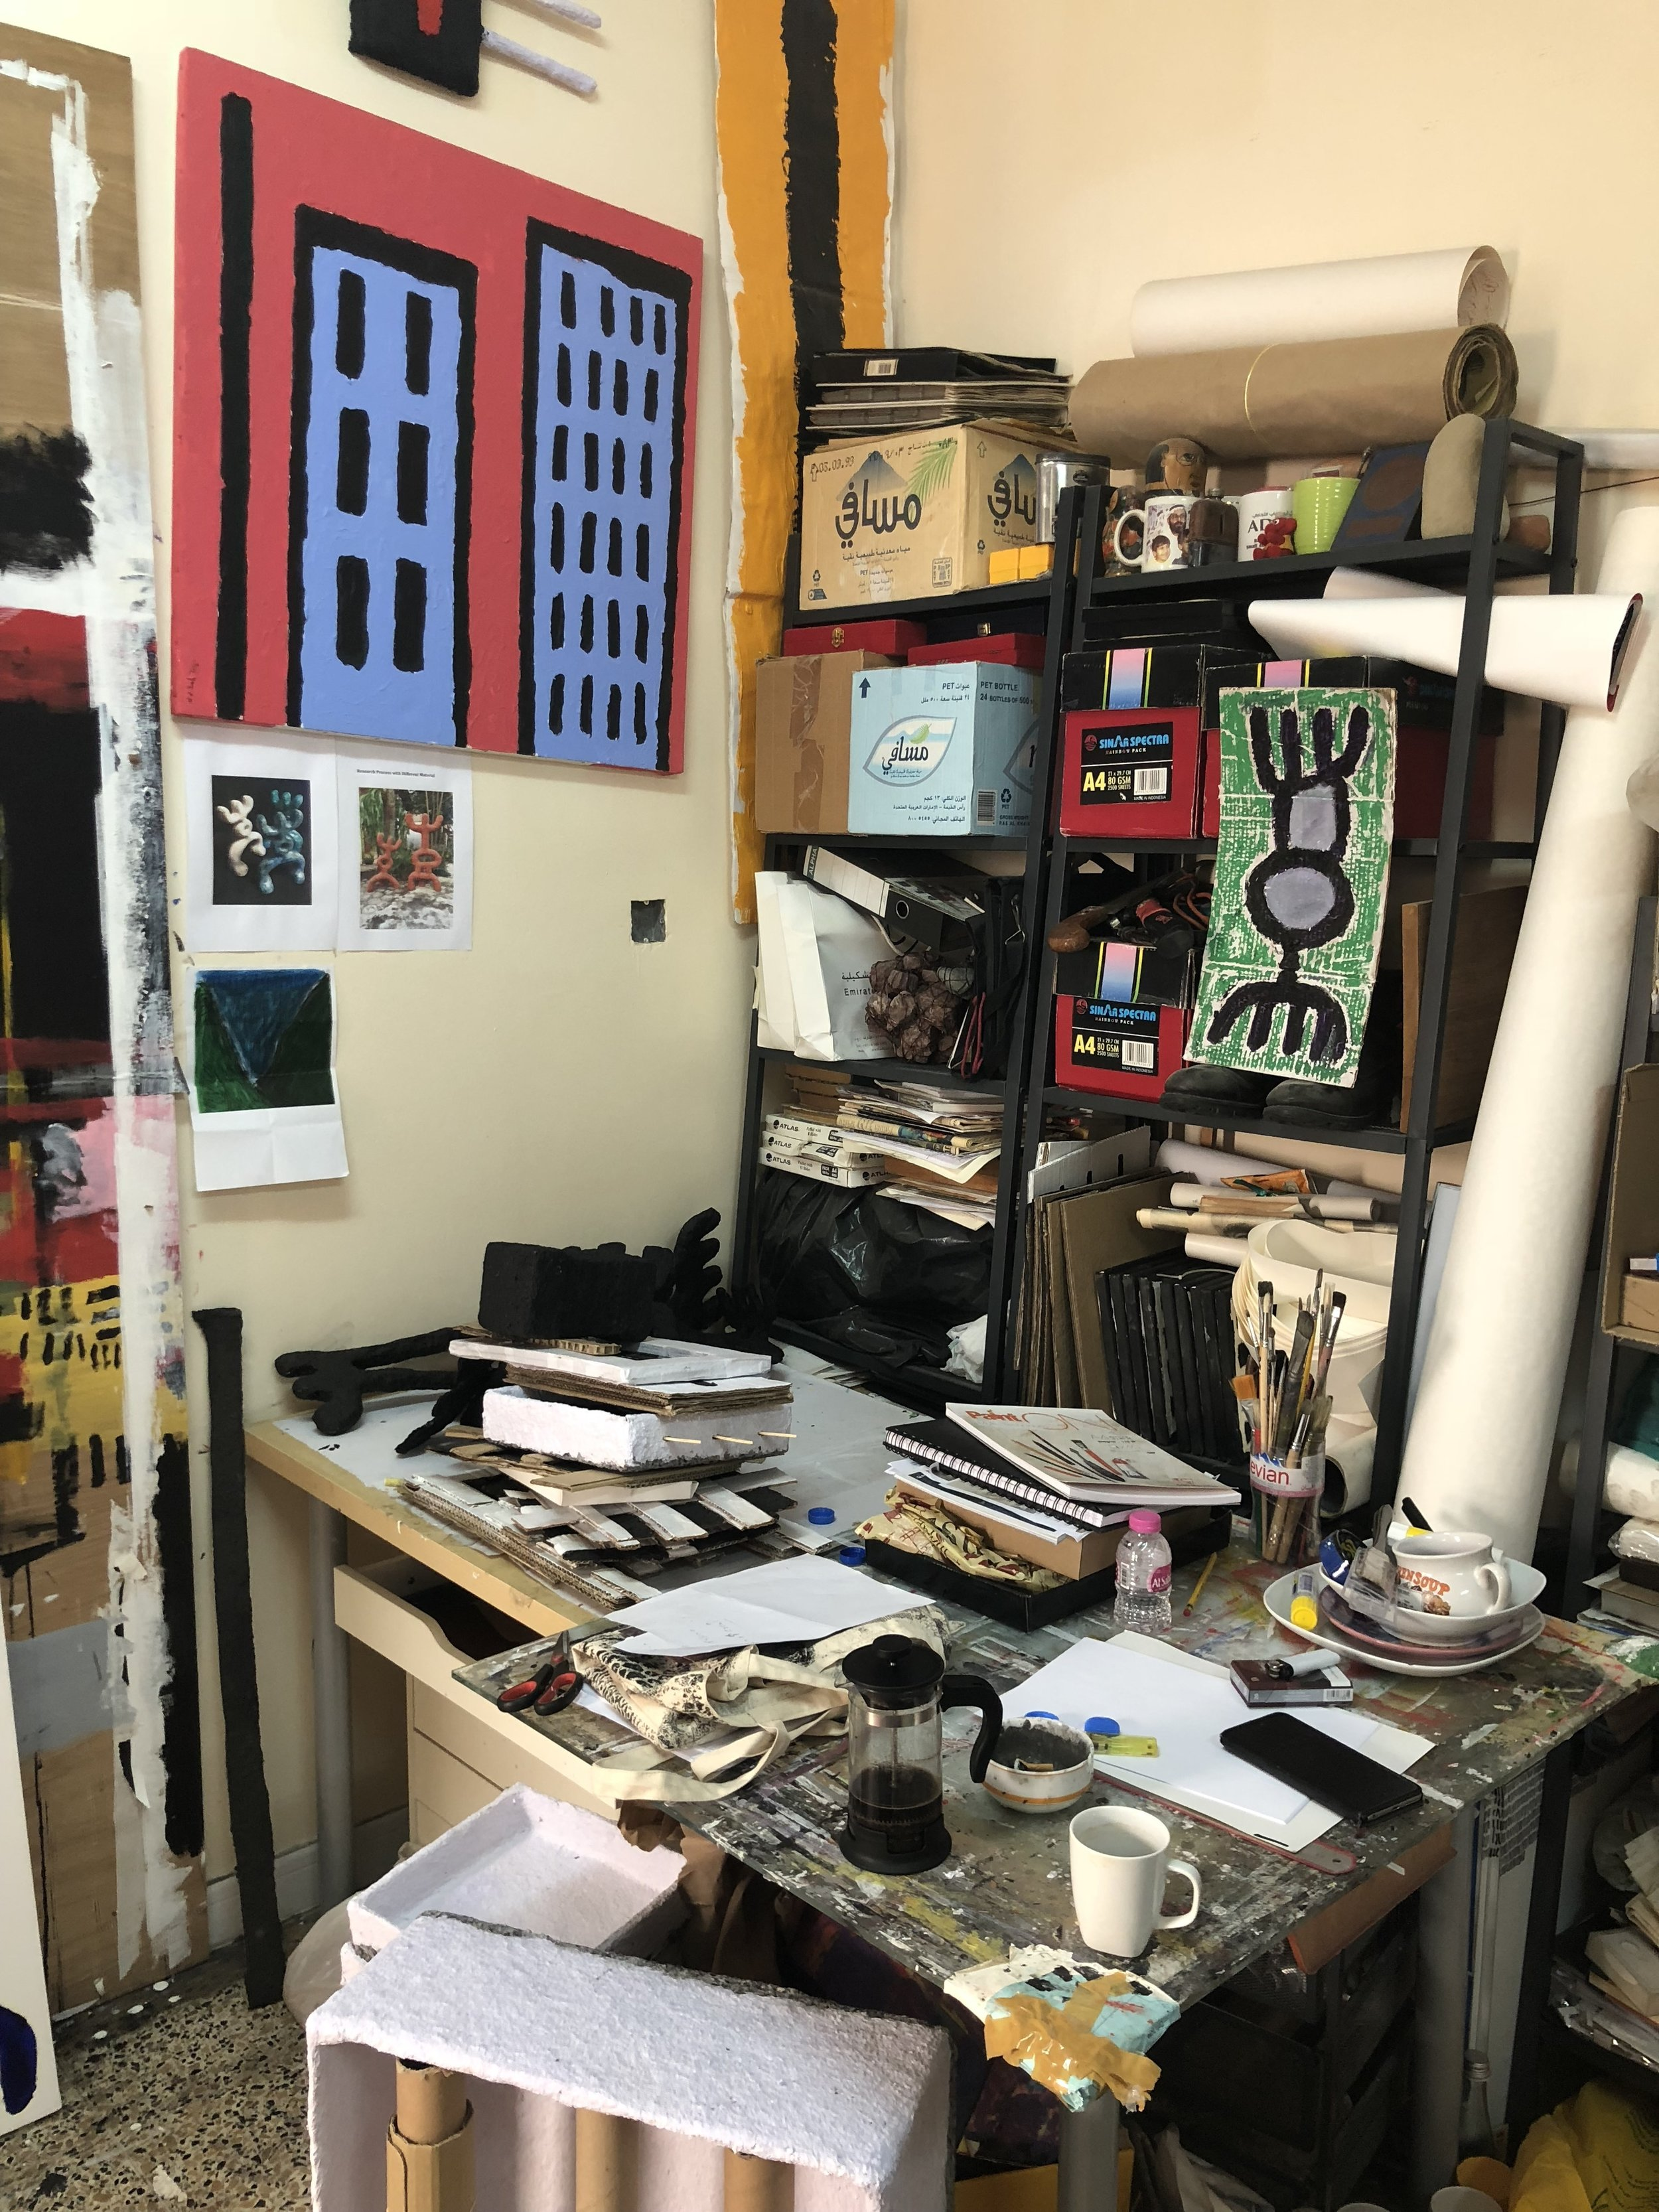 Inside Mohammed Ahmed Ibrahim's studio, his desk is filled with evidence of his daily practice and the walls are hung from ceiling to floor with sketches and canvases. Image taken by Anna Seaman.